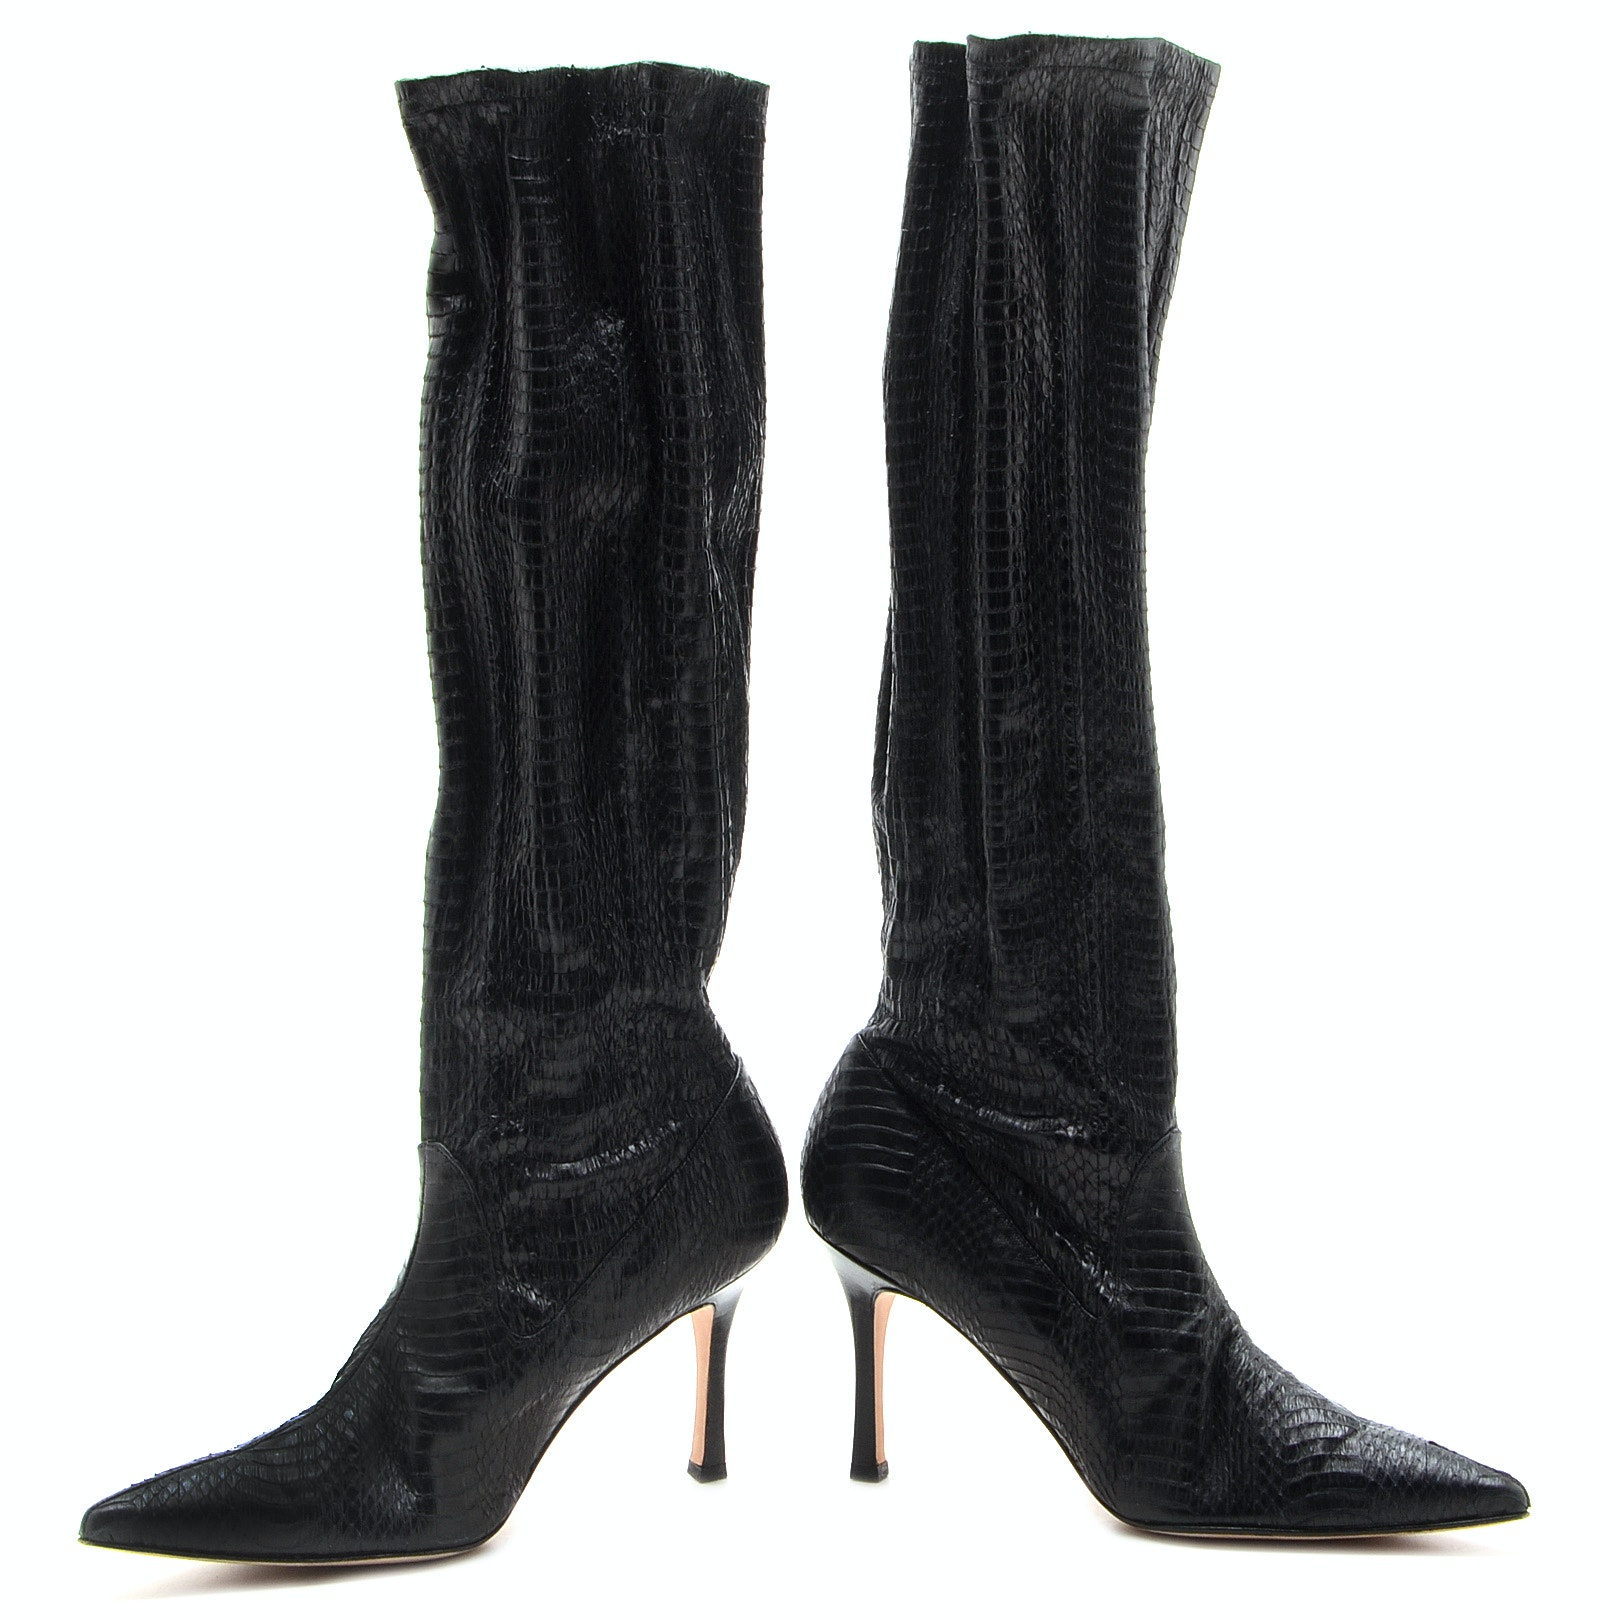 Manolo Blahnik Black Snakeskin Embossed Below-The-Knee Pull-Up Boots